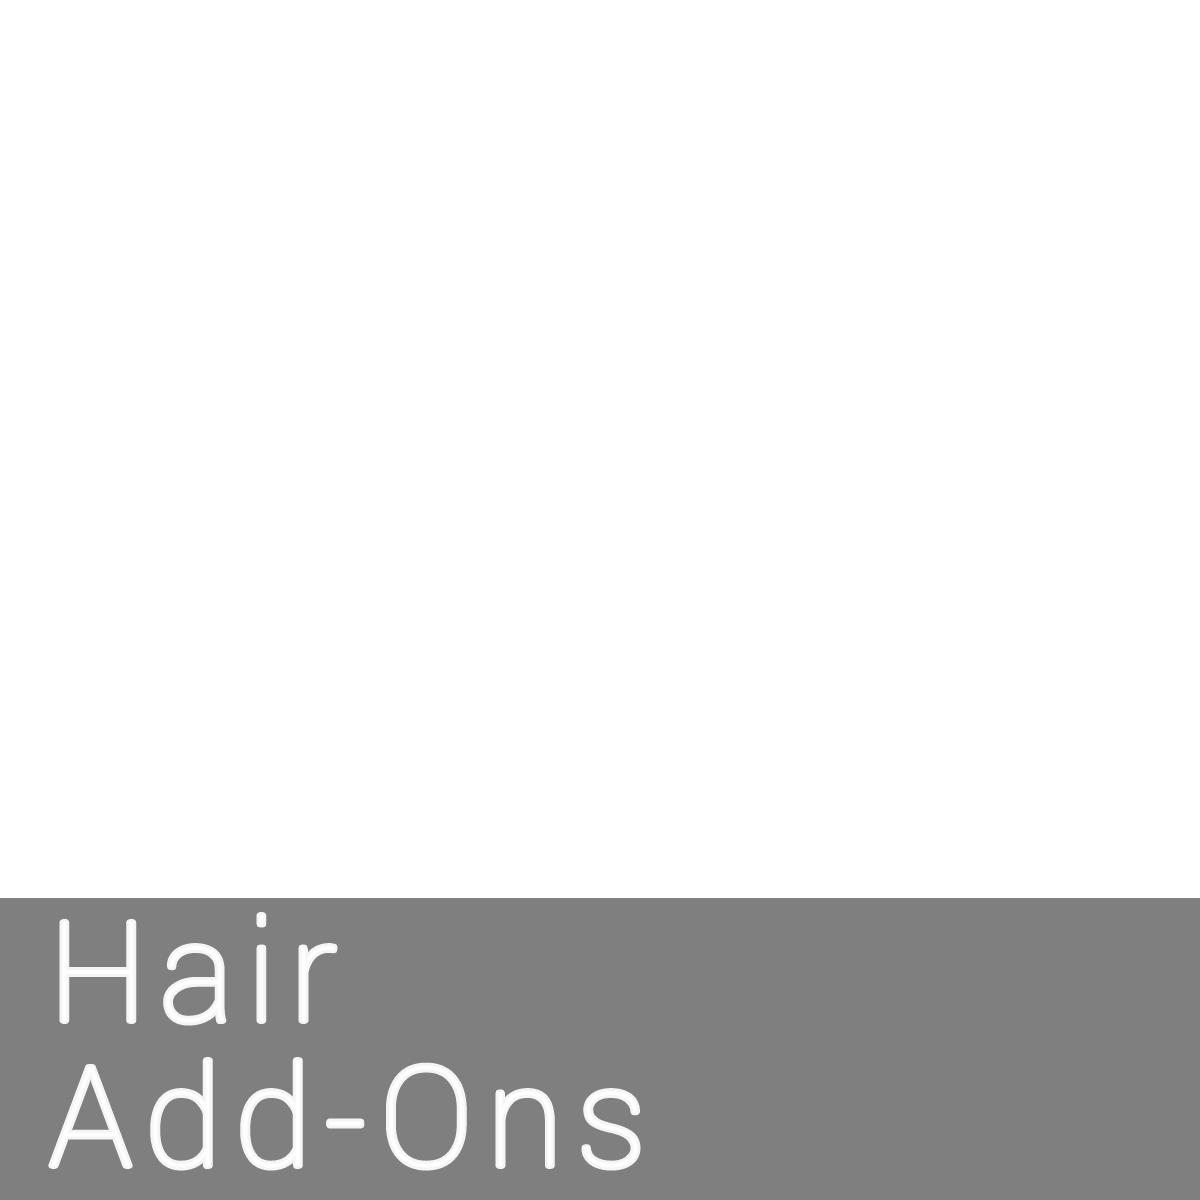 voga-wigs-and-hair-add-ons-home-page-box-link-hair-add-ons